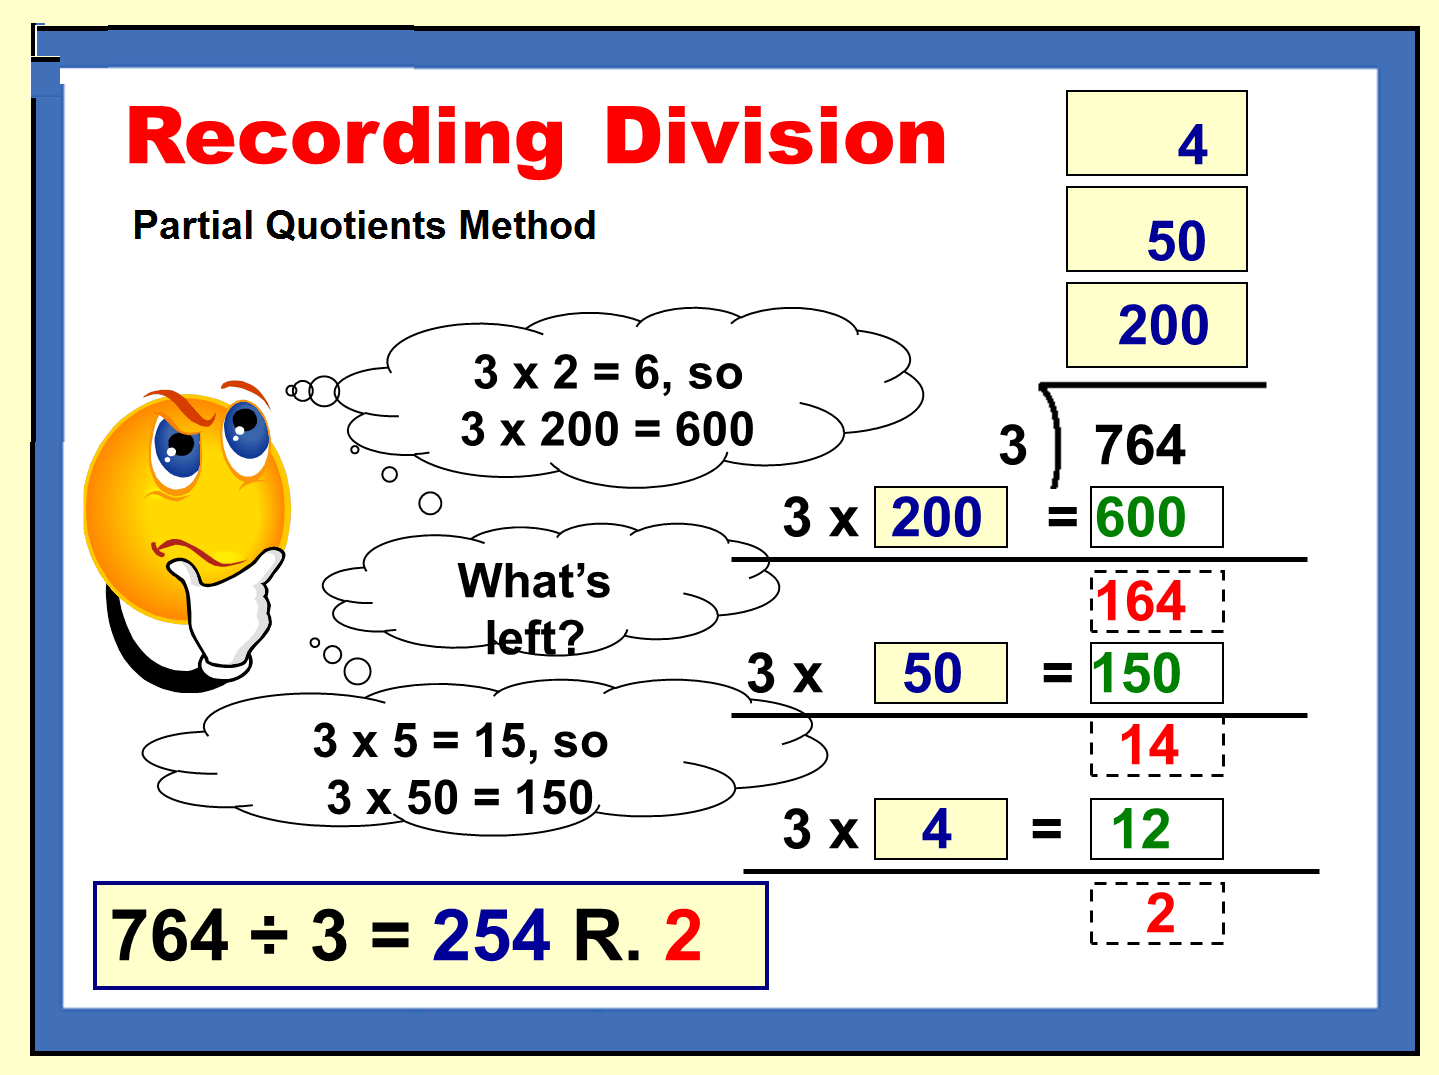 Idevbooks Math Apps Fraction And Division Promo Codes Offer Images